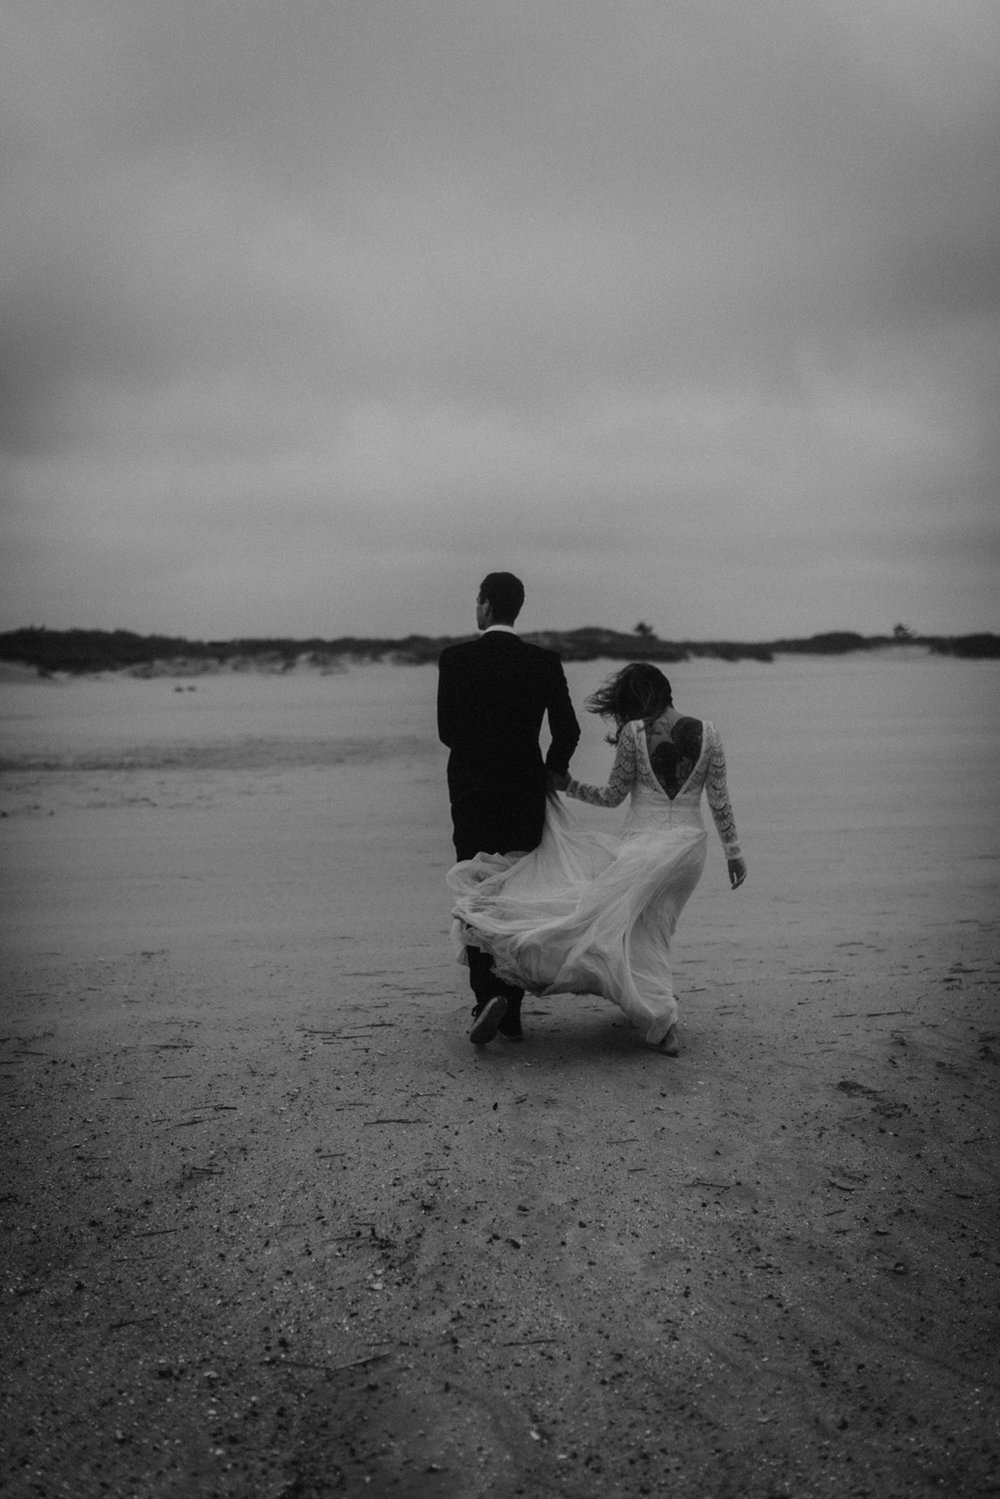 kylewillisphoto_kyle_Willis_Photography_liz_gibbs_brigantine_beach_atlantic_city_wedding_philadelphia_jersey_shore_new_nyc_engagement_delaware_engaged_married_rainy_photos_ac_boho39.jpg